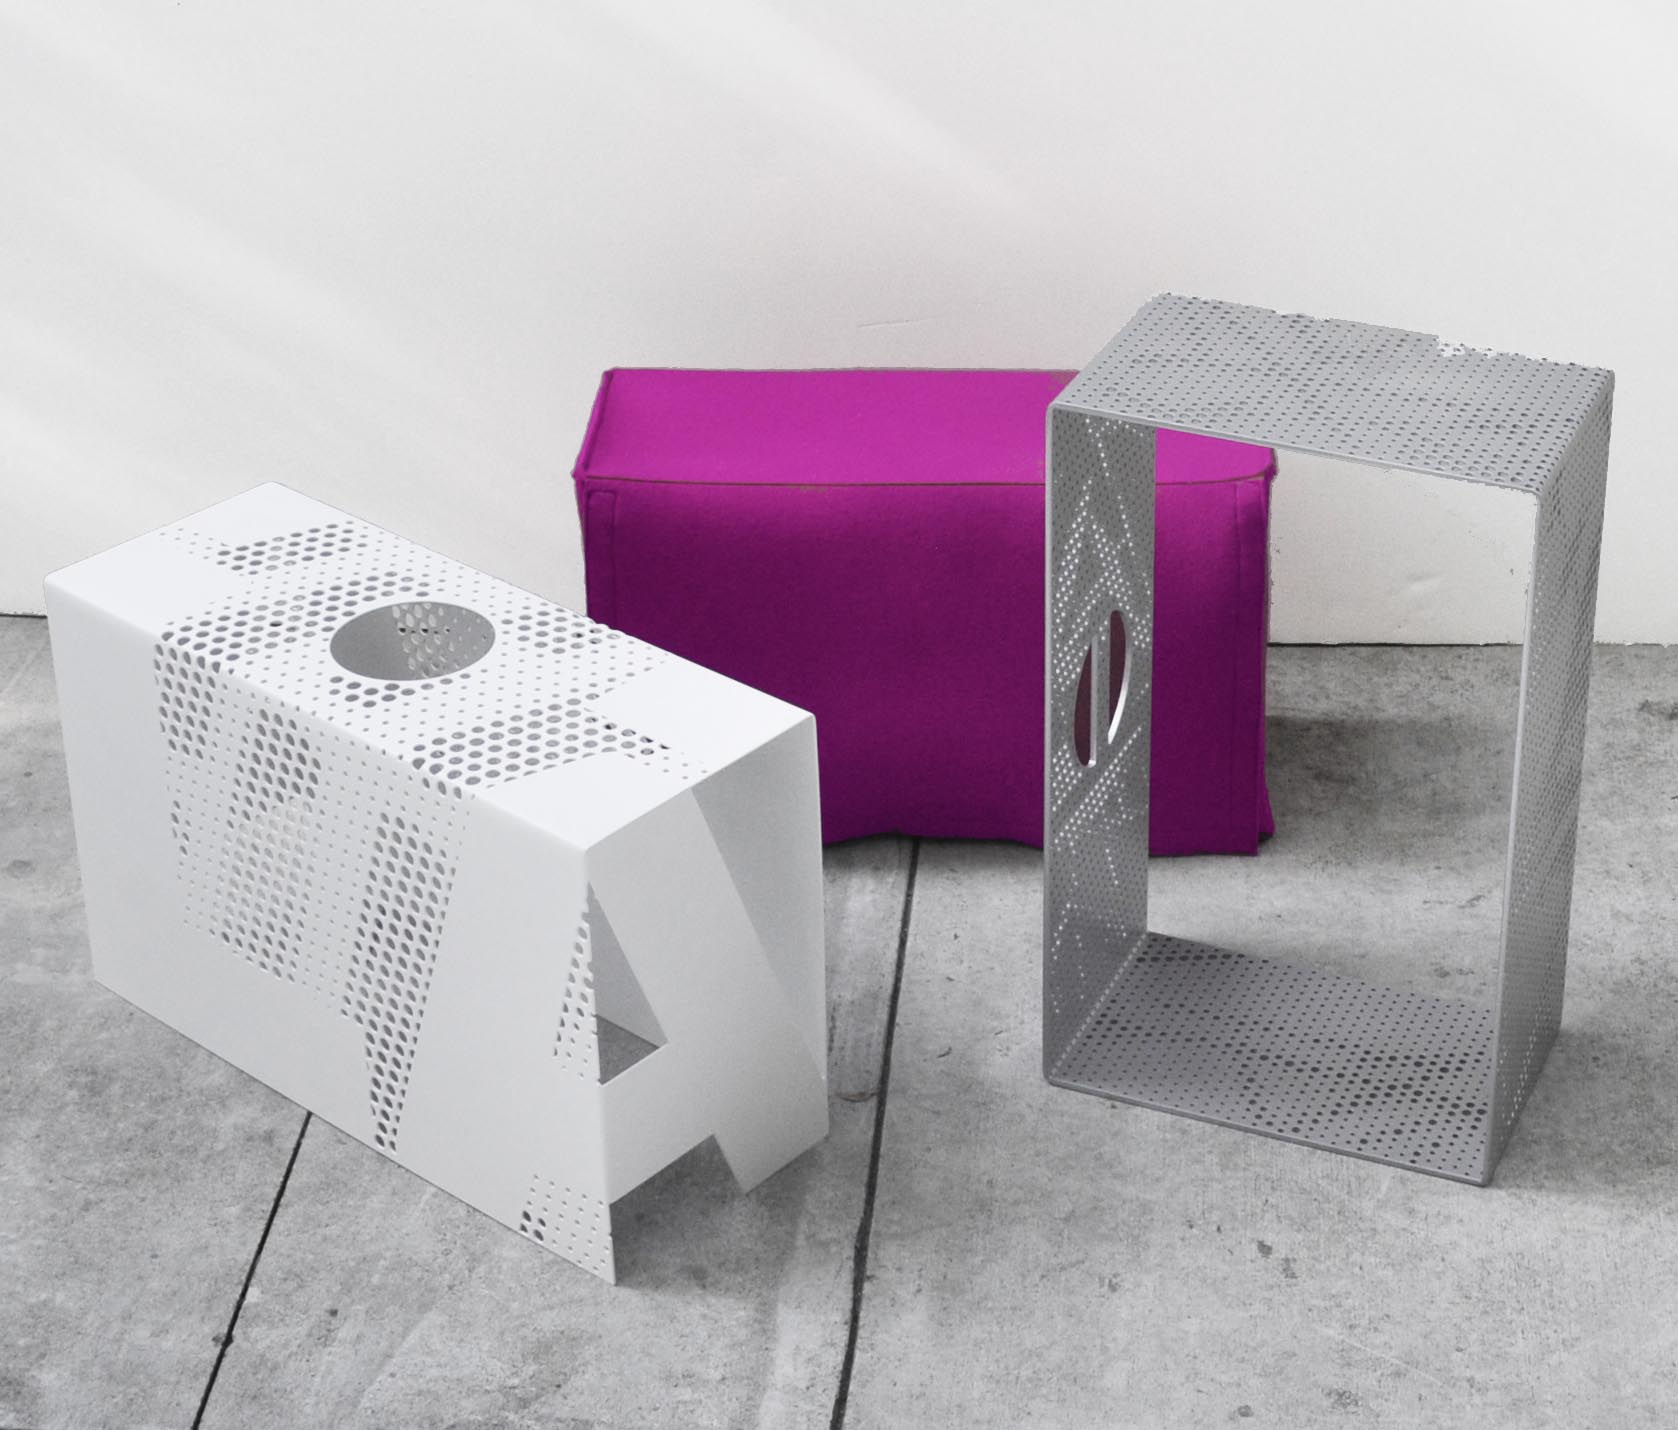 Arktura Solutions Studio perforated metal shrouds for mobile seats for A+D Exhibit in partnership with Lehrer Architects.